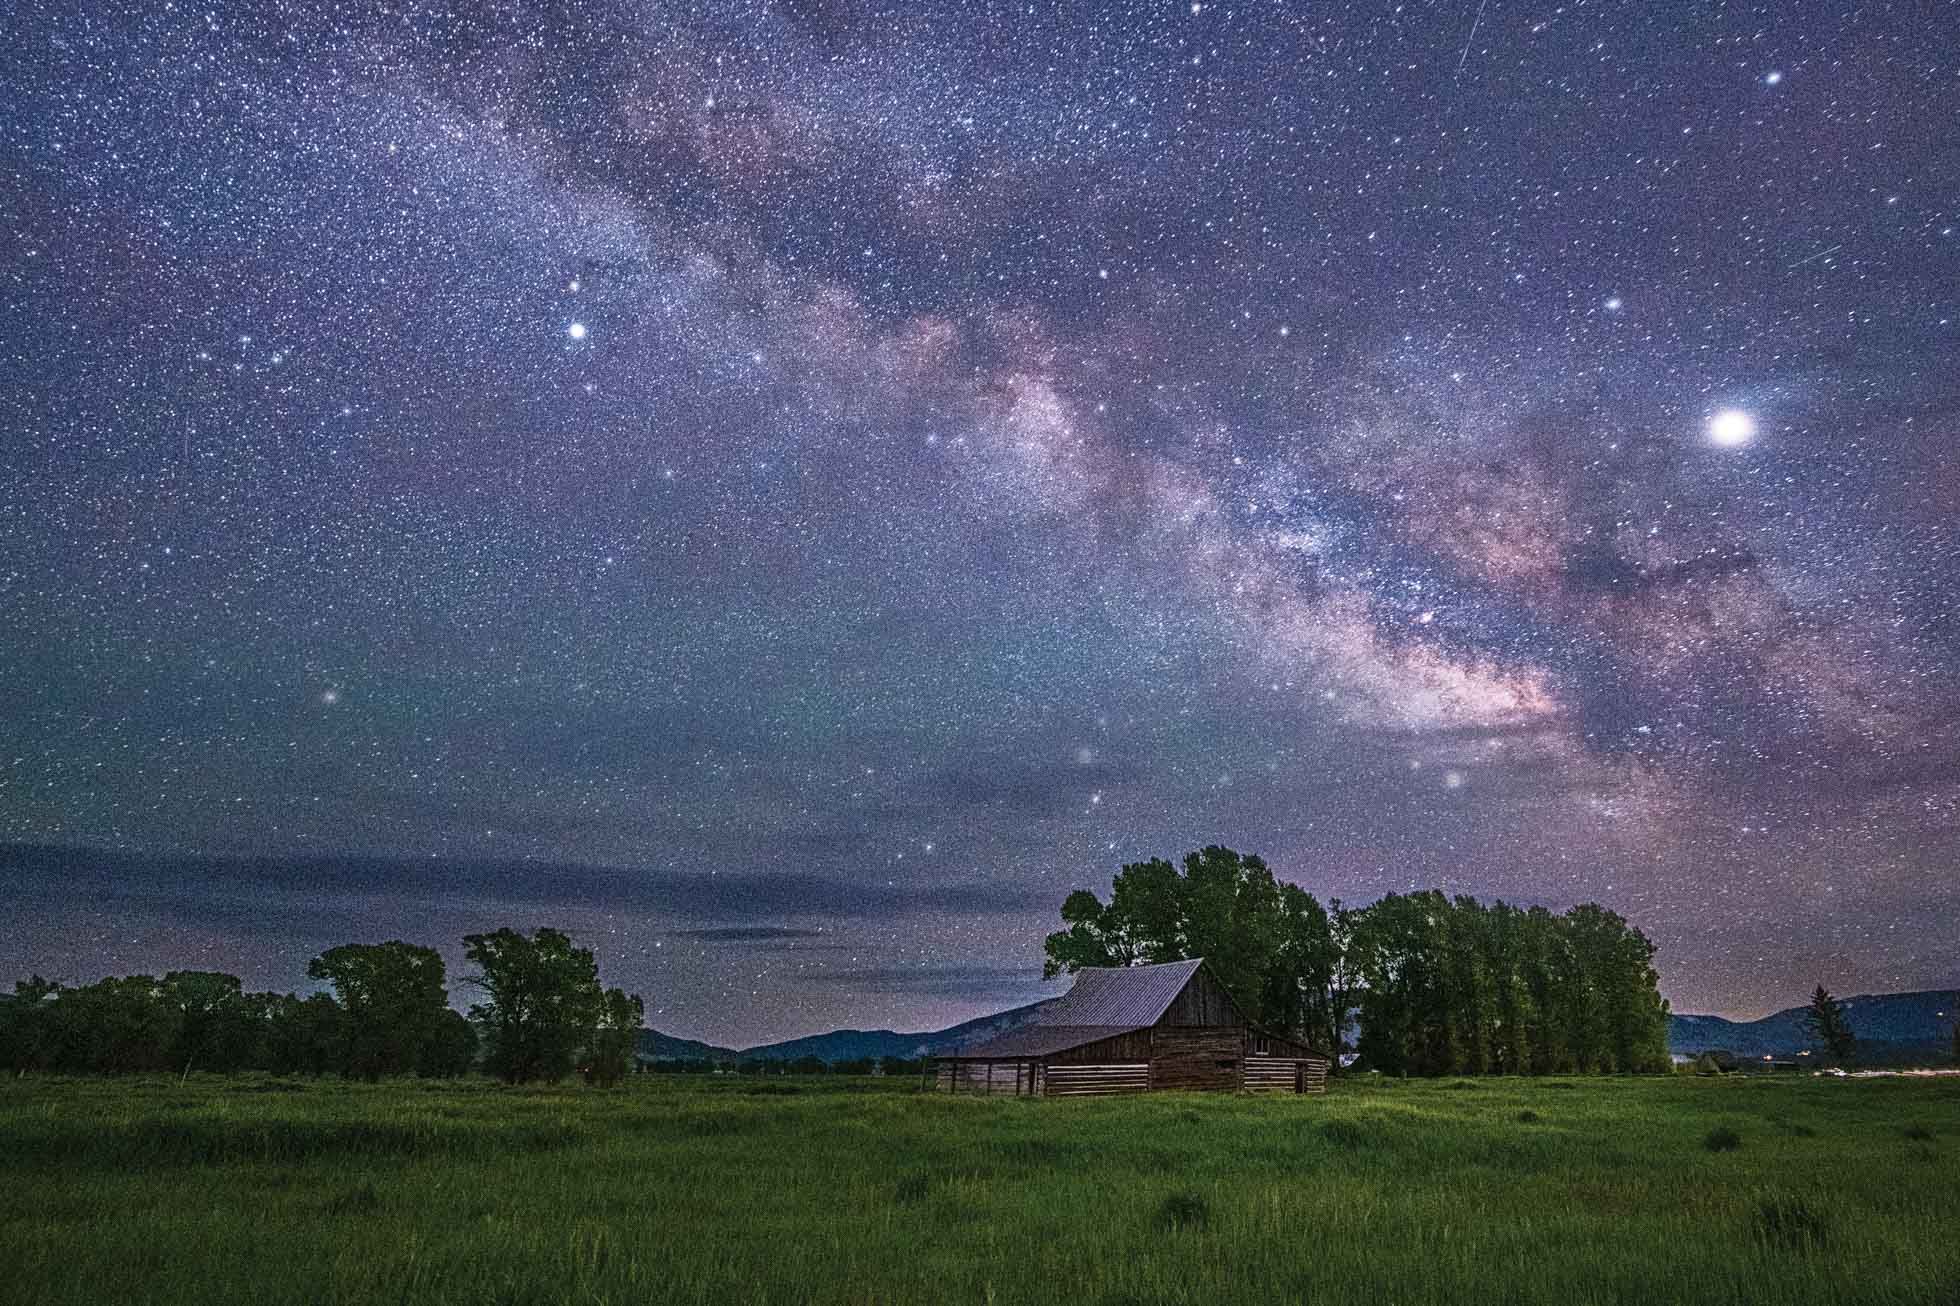 Milky Way over the Moulton Barn in Jackson Hole, Wyoming at the June 2019 Magic in the Tetons Retreat